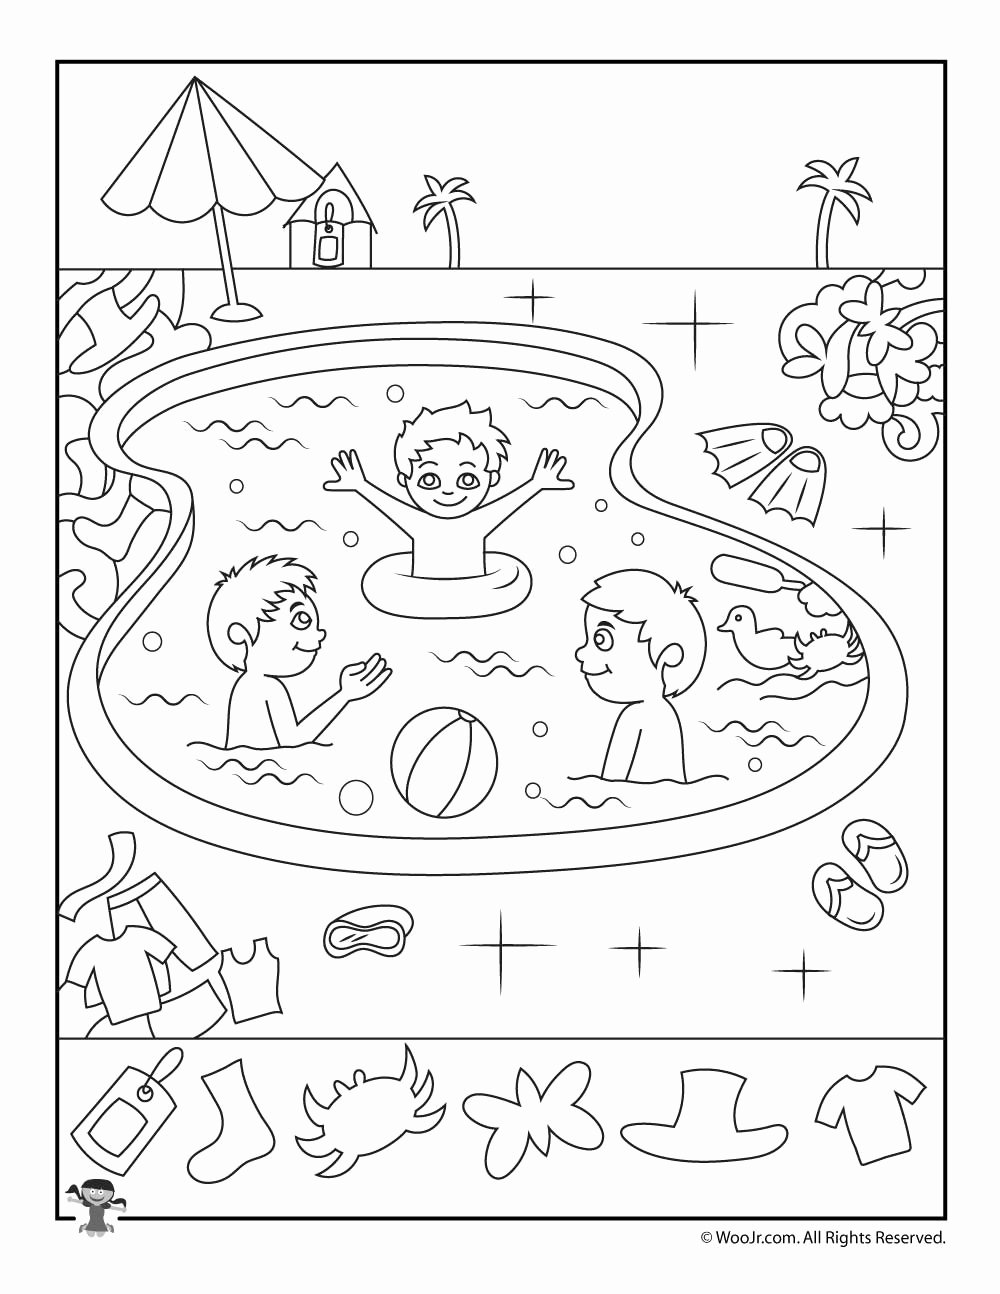 Hidden Objects Worksheets for Preschoolers Printable Pool Hidden Objects Worksheet Woo Jr Kids Activities